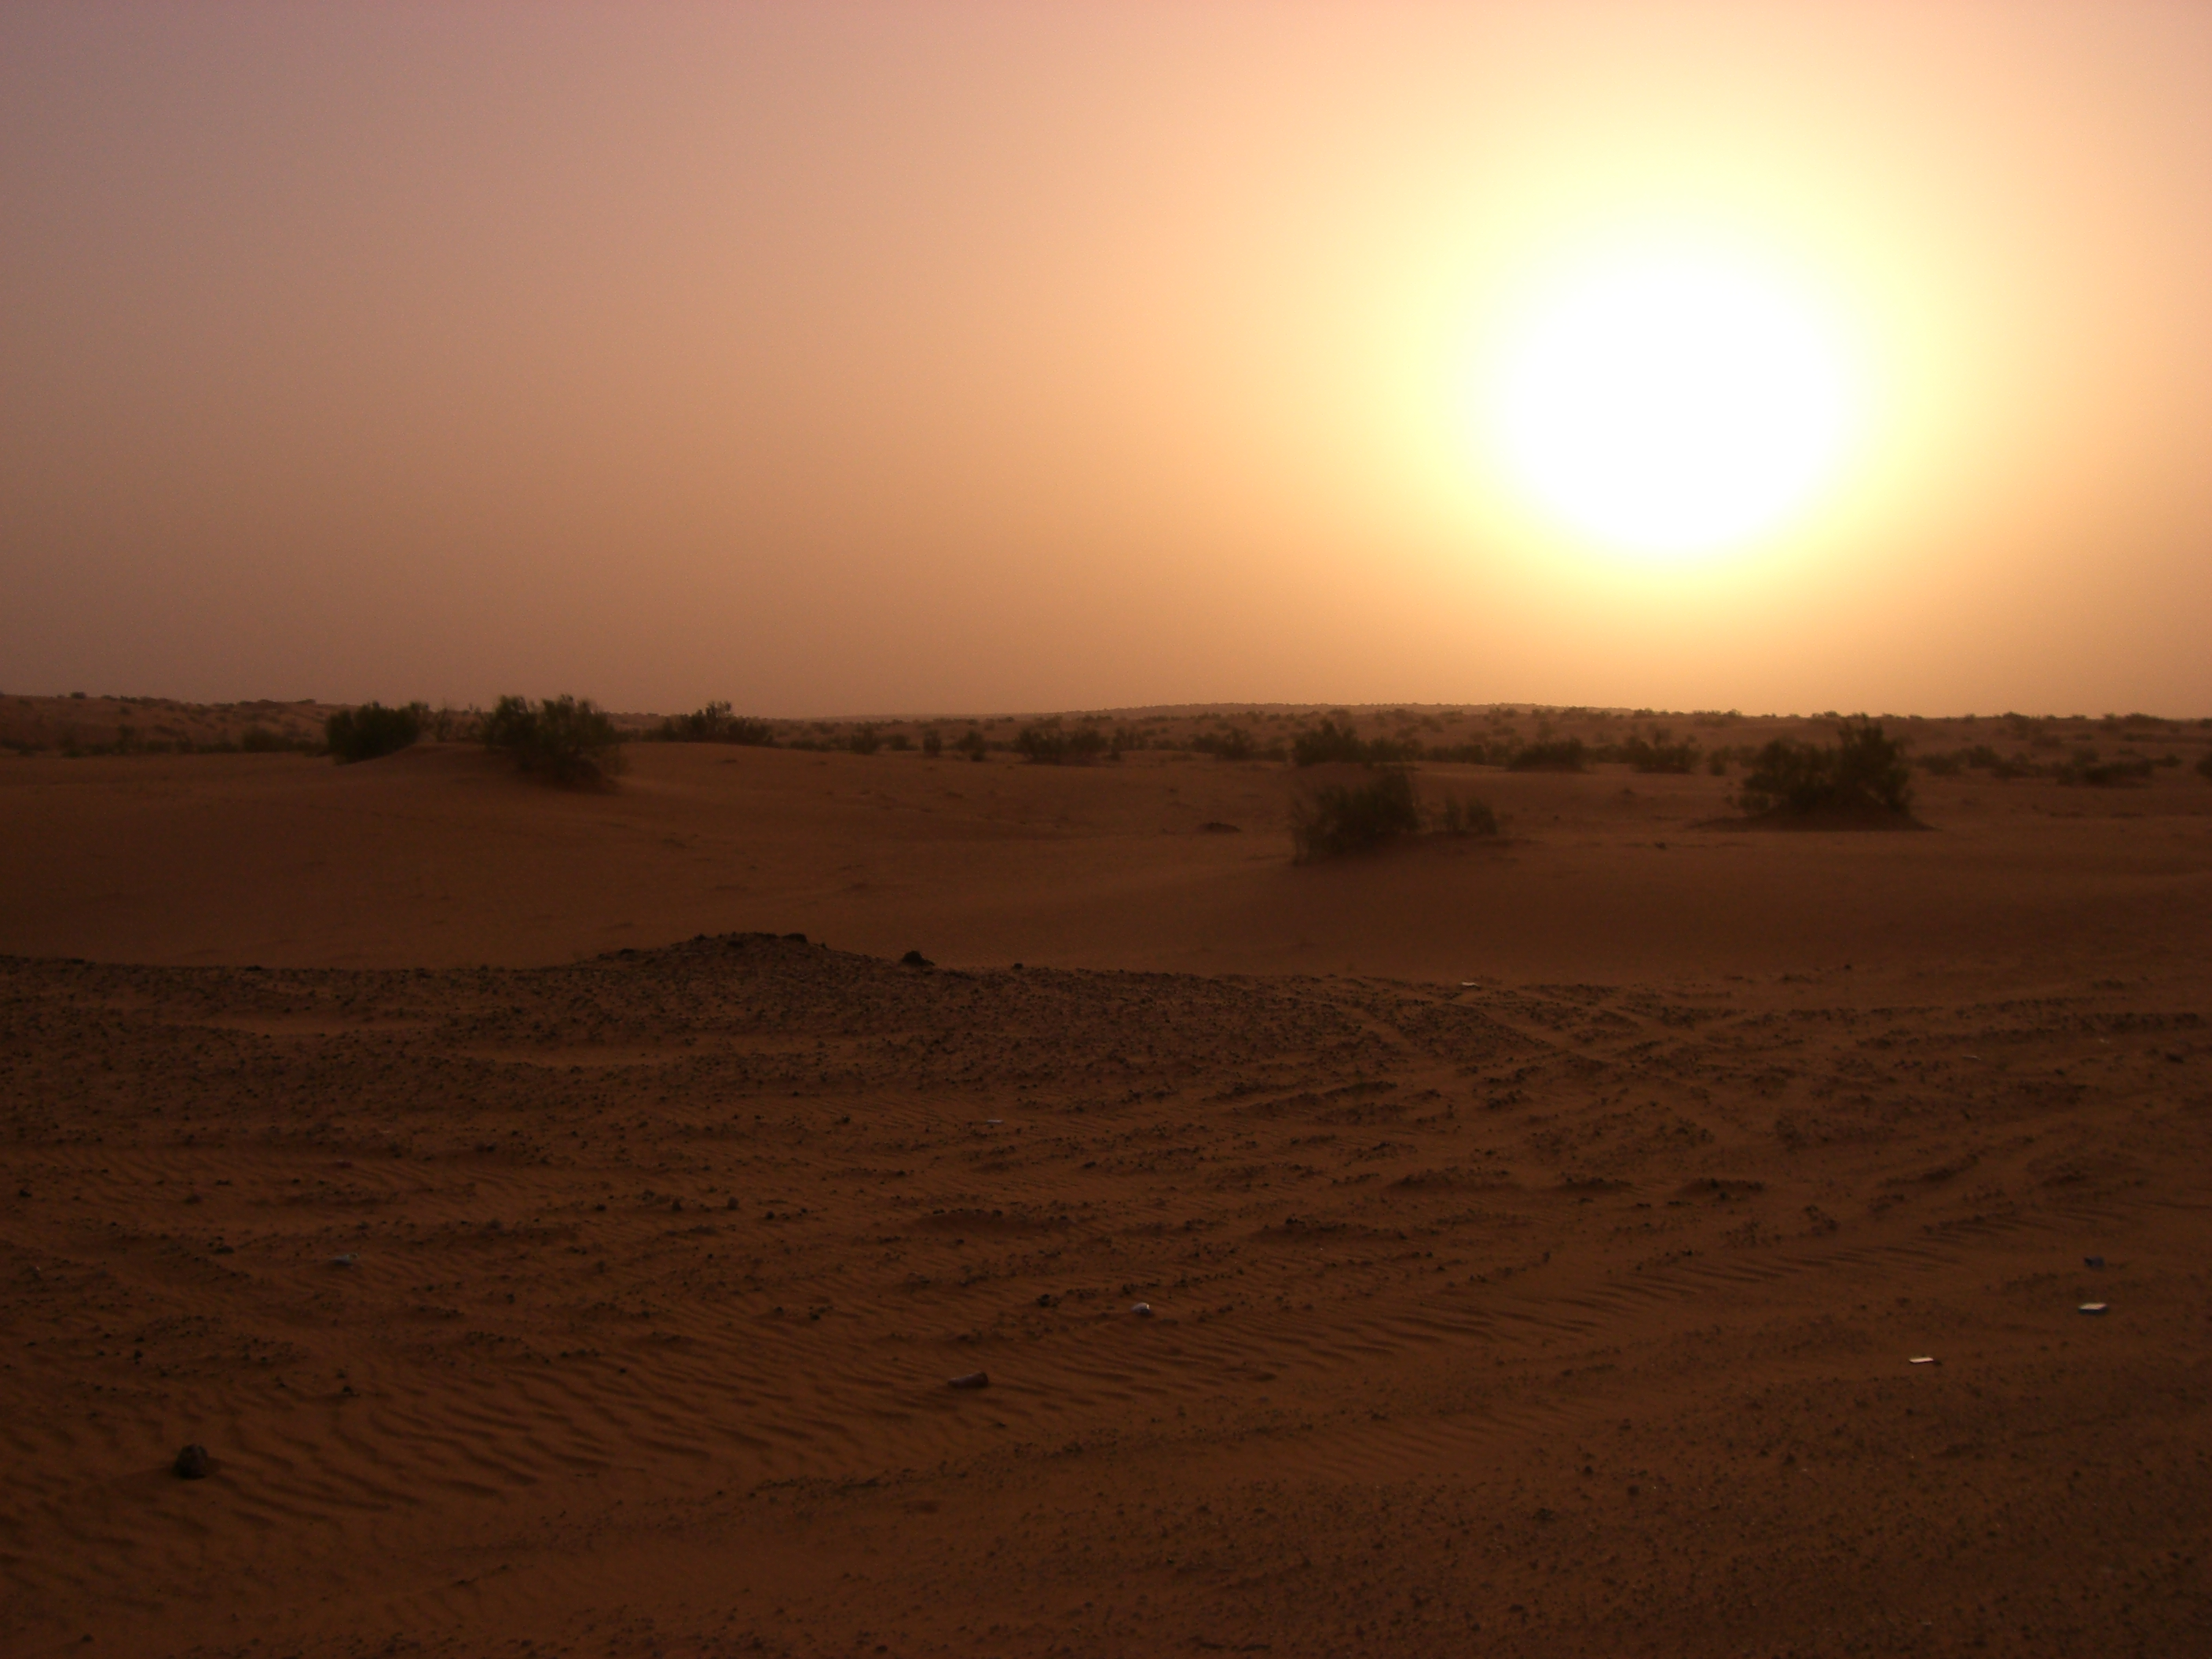 Desert of Saudi Arabia at sun down.